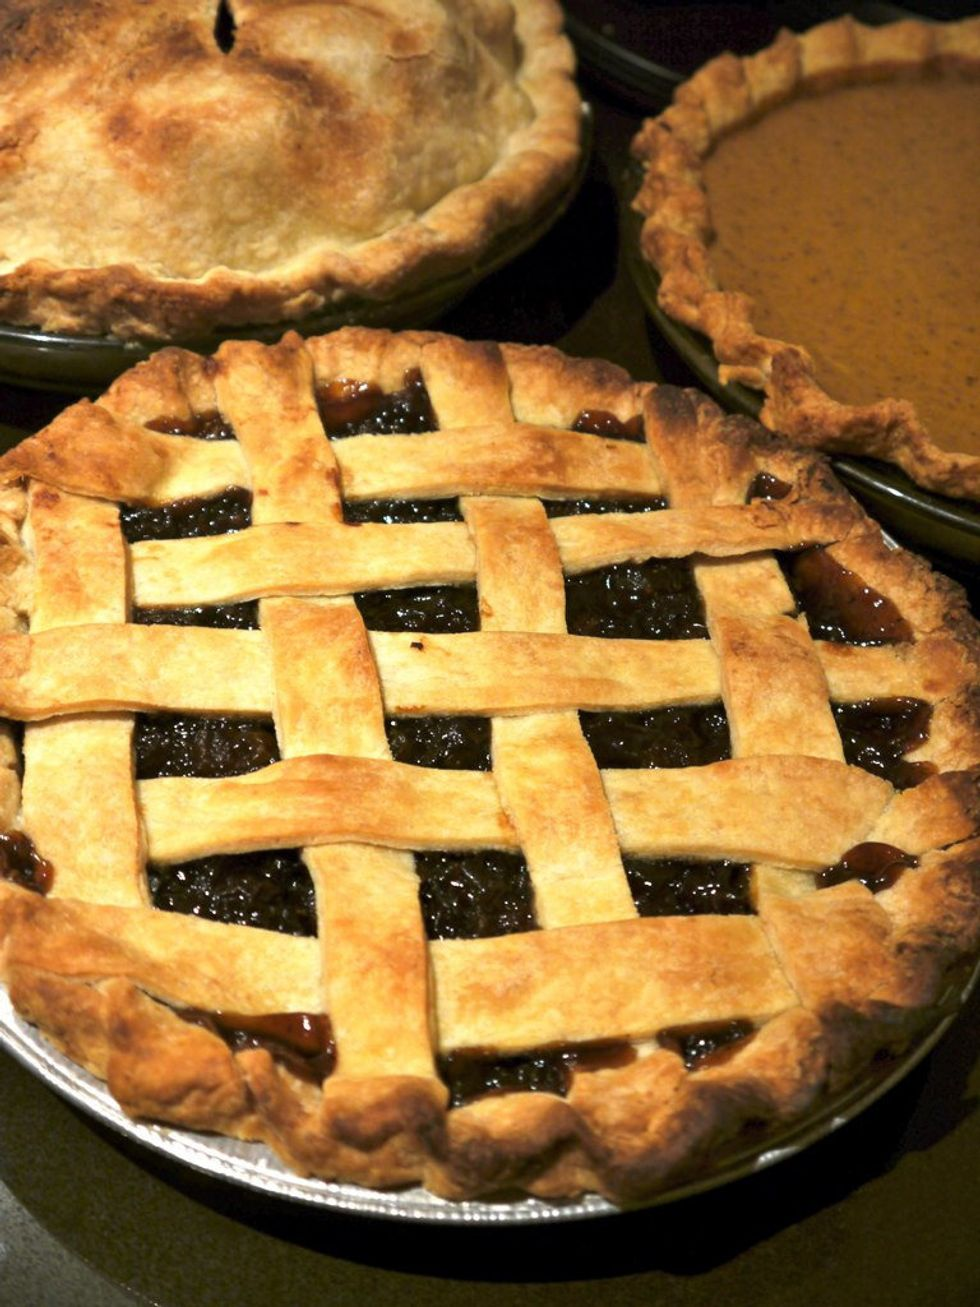 The 11 Pies That Are Acceptable At Your Thanksgiving Table, Accept No Substitutes